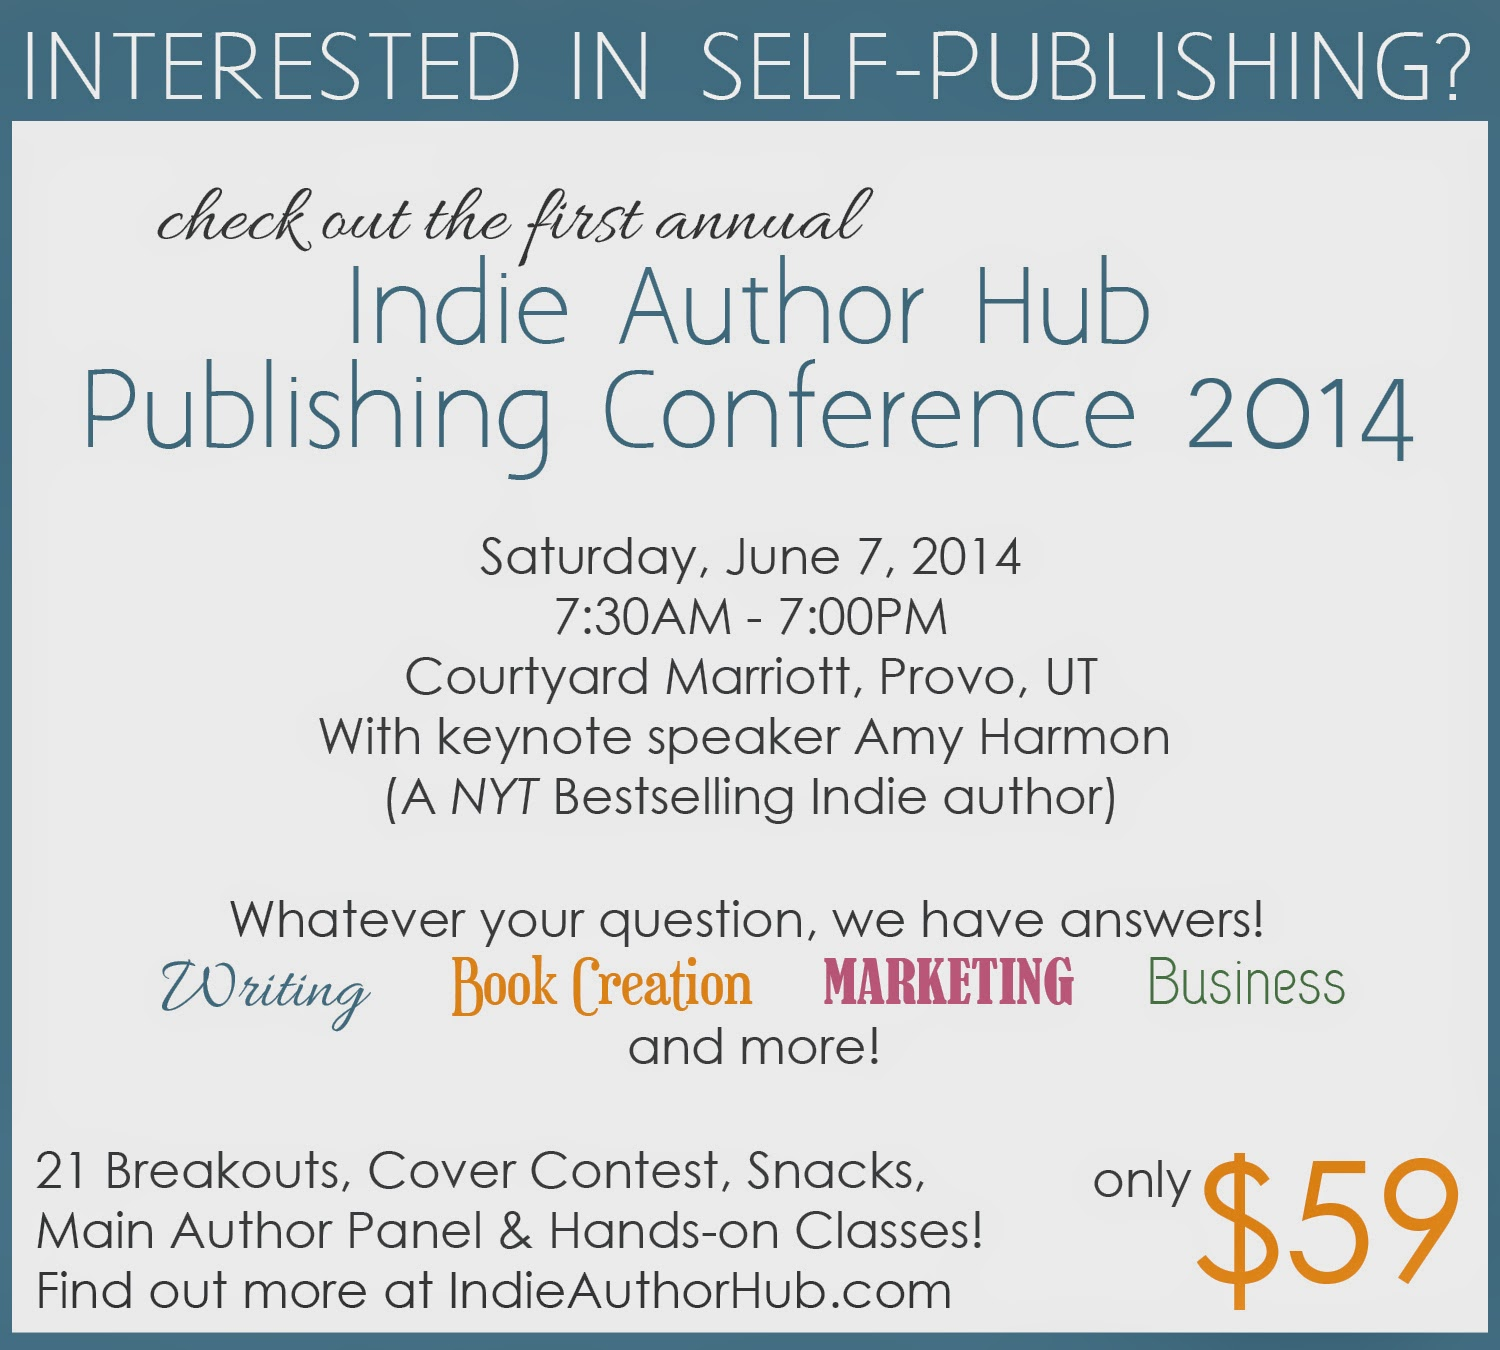 http://www.indieauthorhub.com/2014/01/2014-publishing-conference-class-details.html